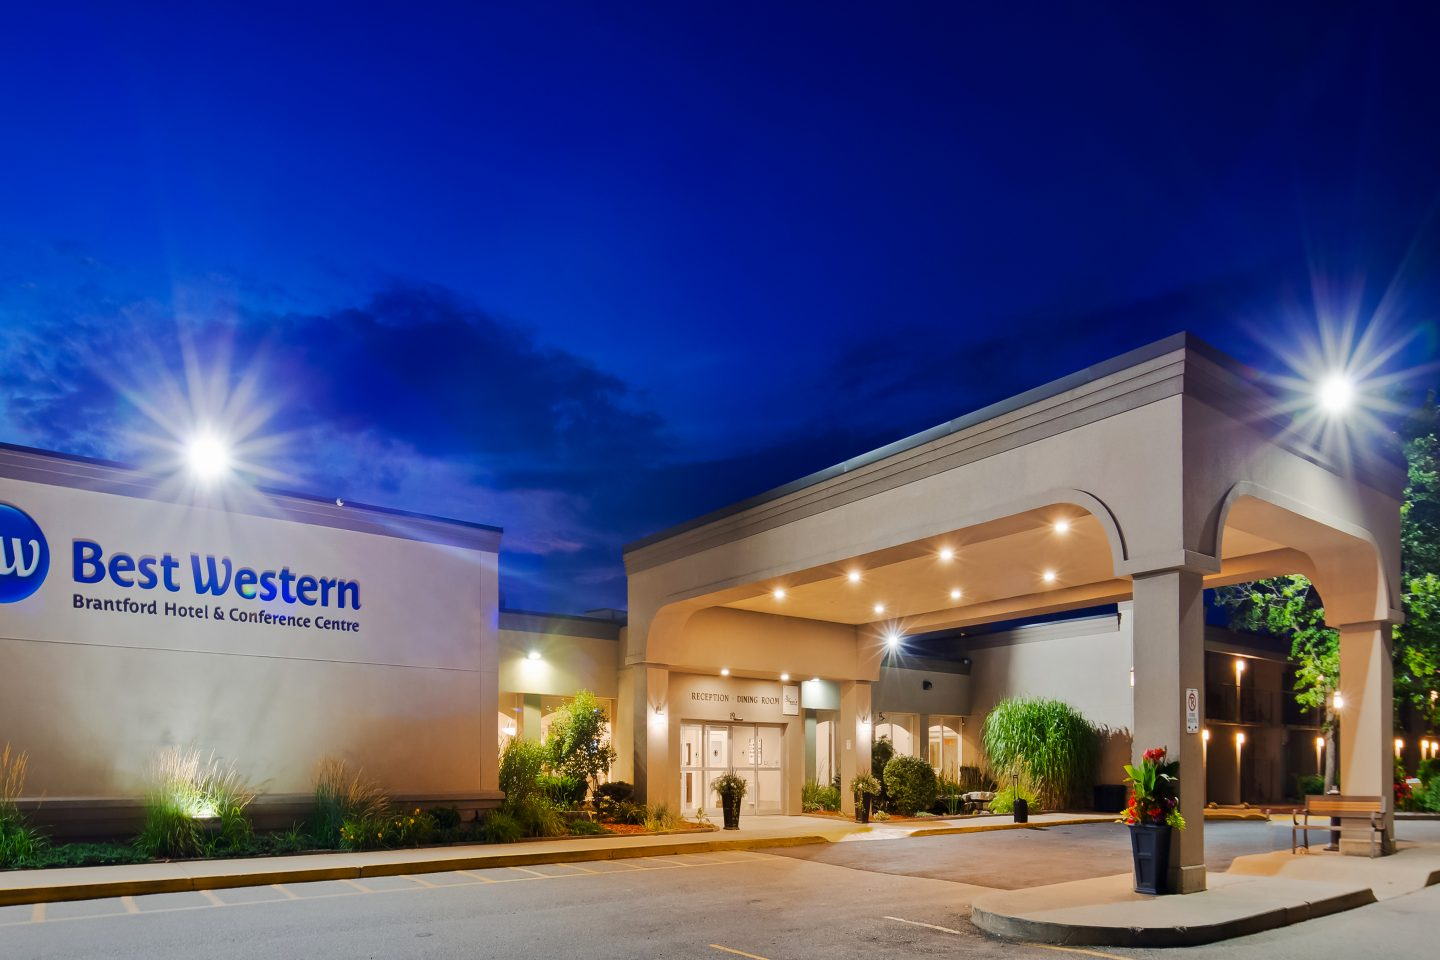 15% off flexible hotel rate at Best Western Brantford Hotel